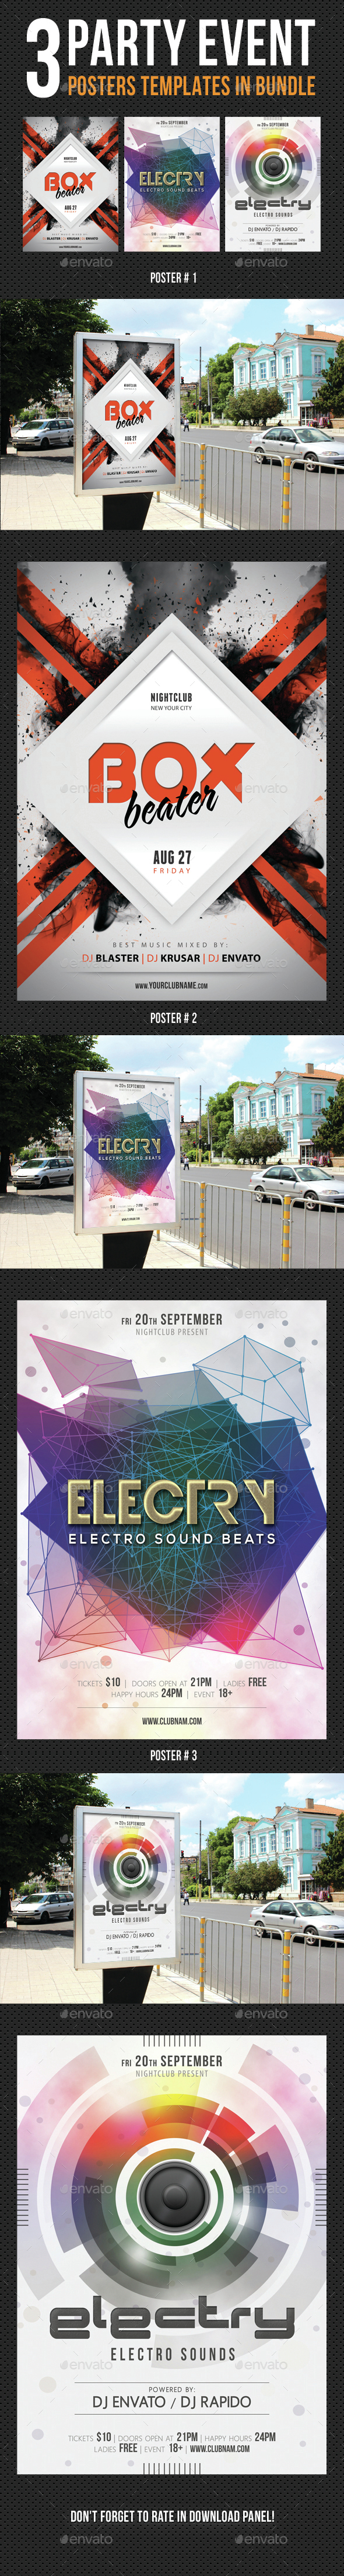 3 Party Event Music Poster Bundle - Signage Print Templates